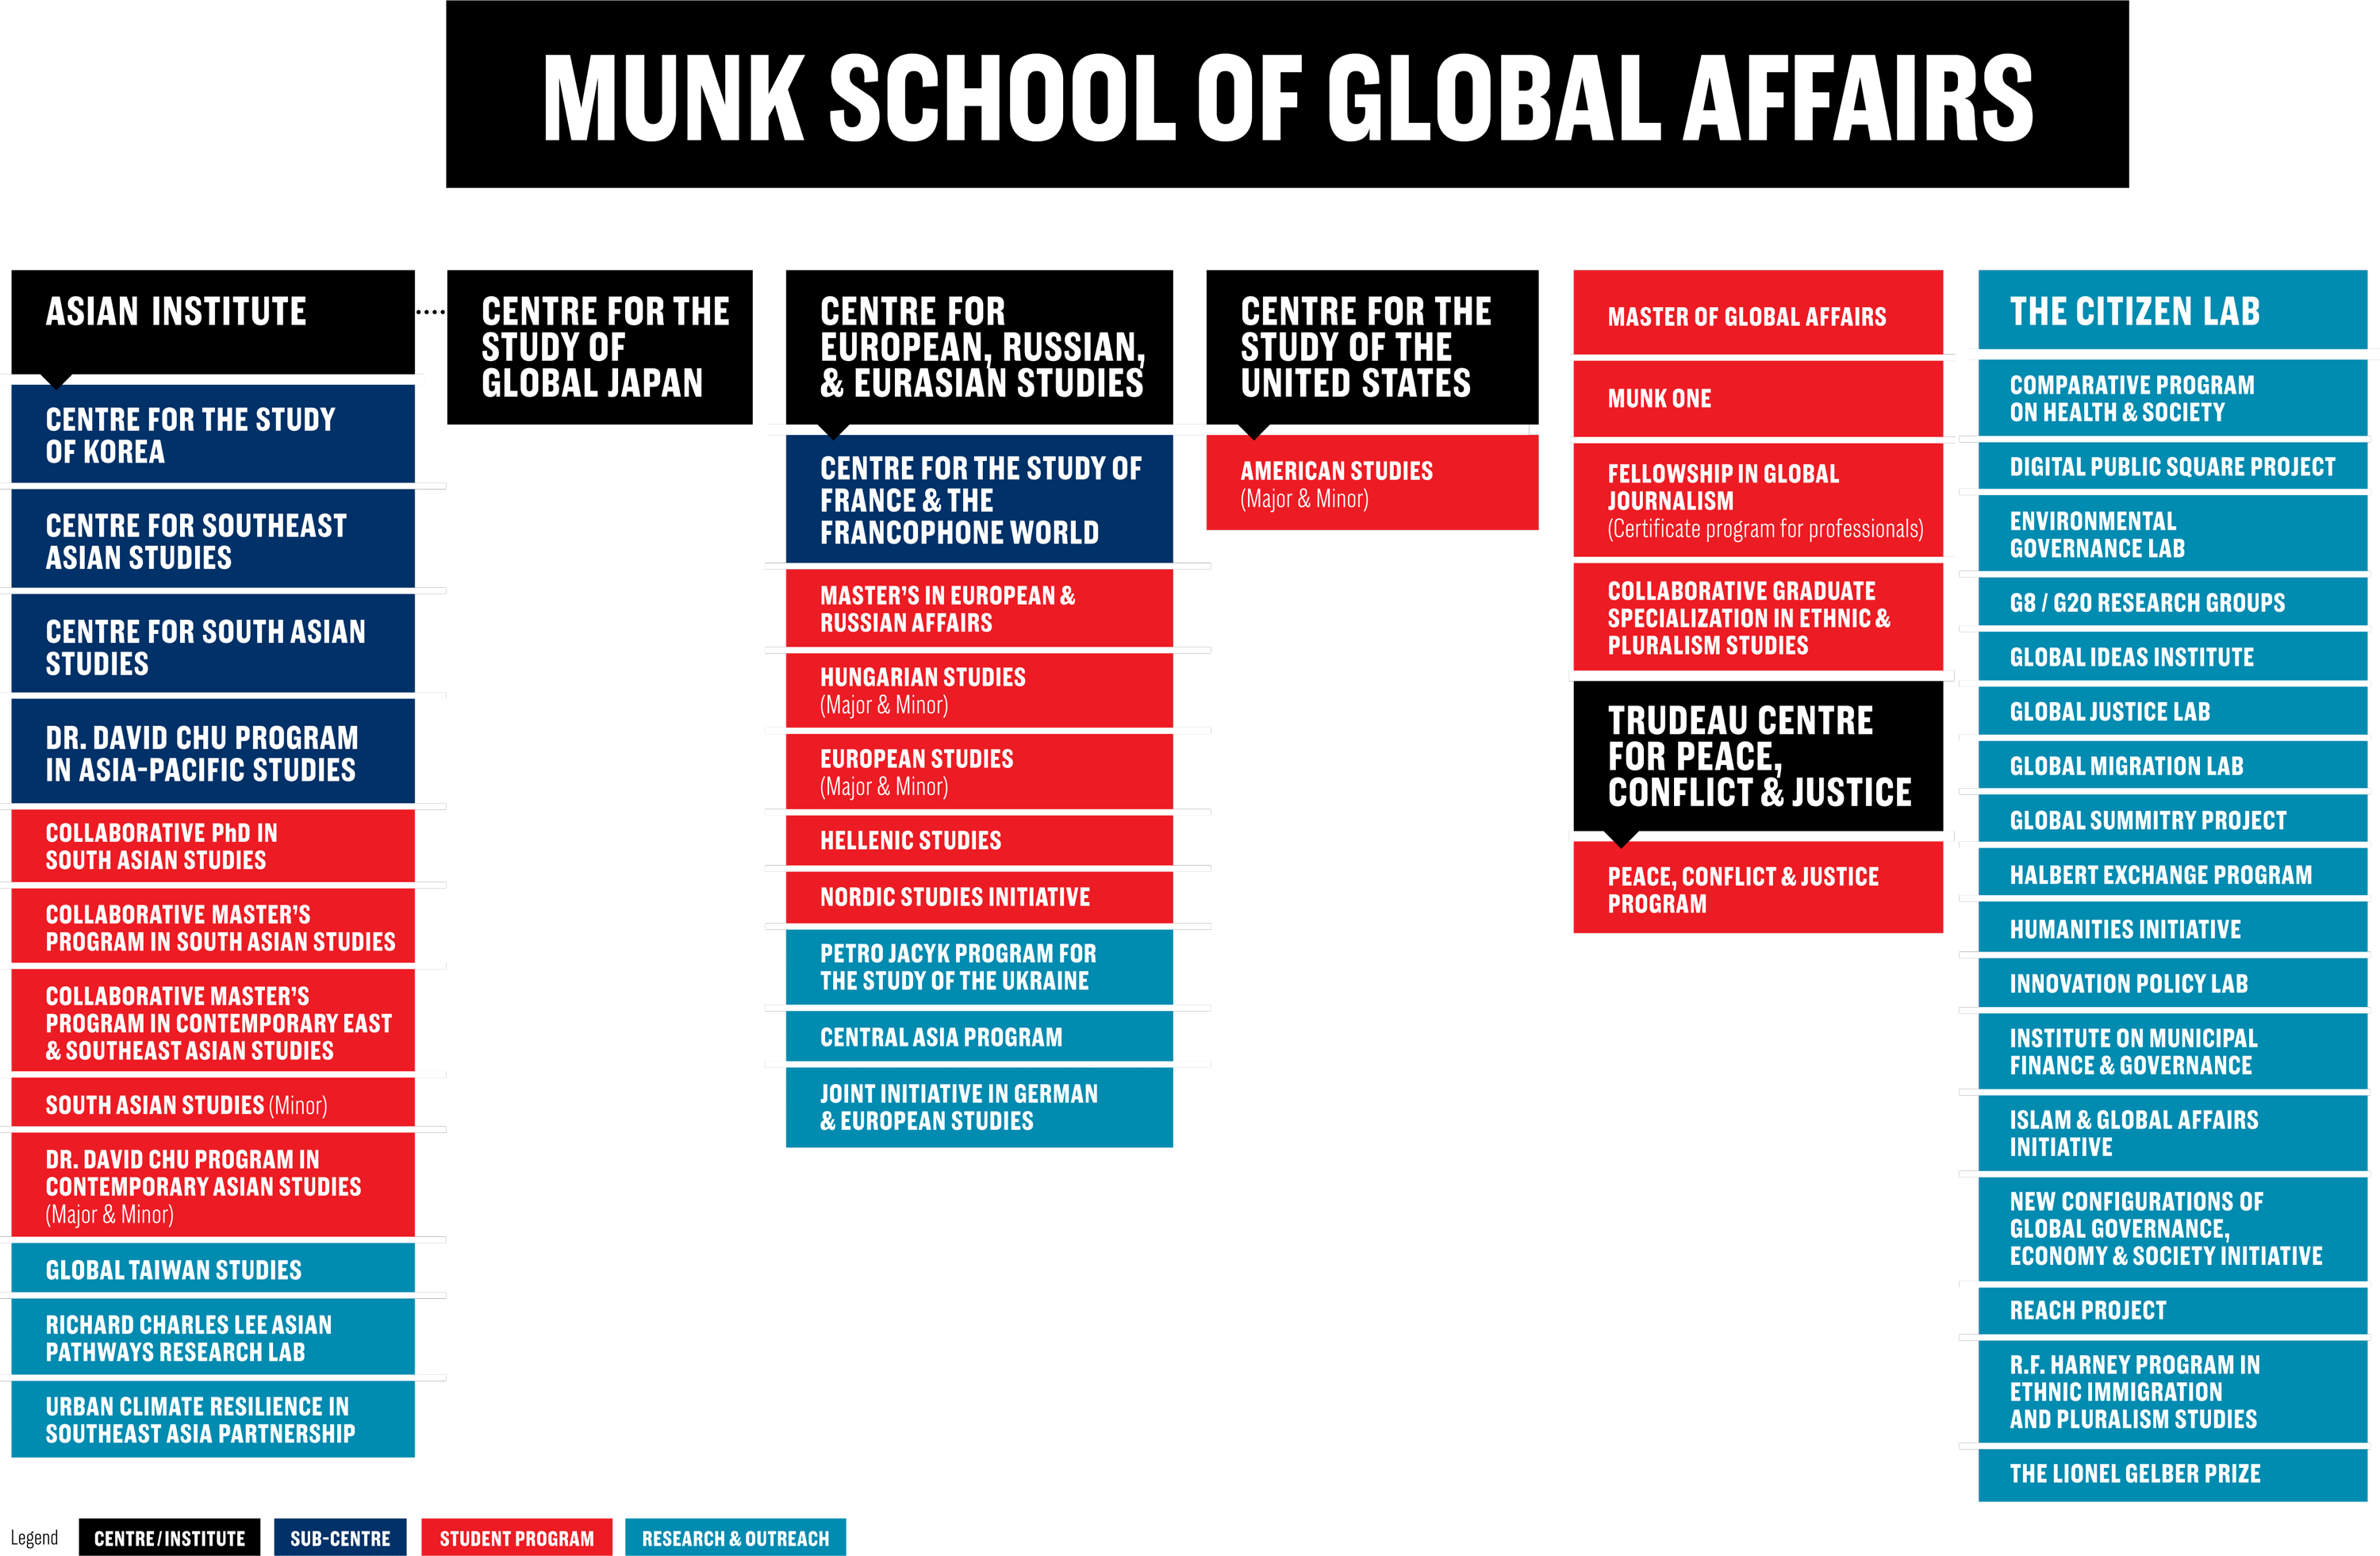 Organization chart for the Munk School.